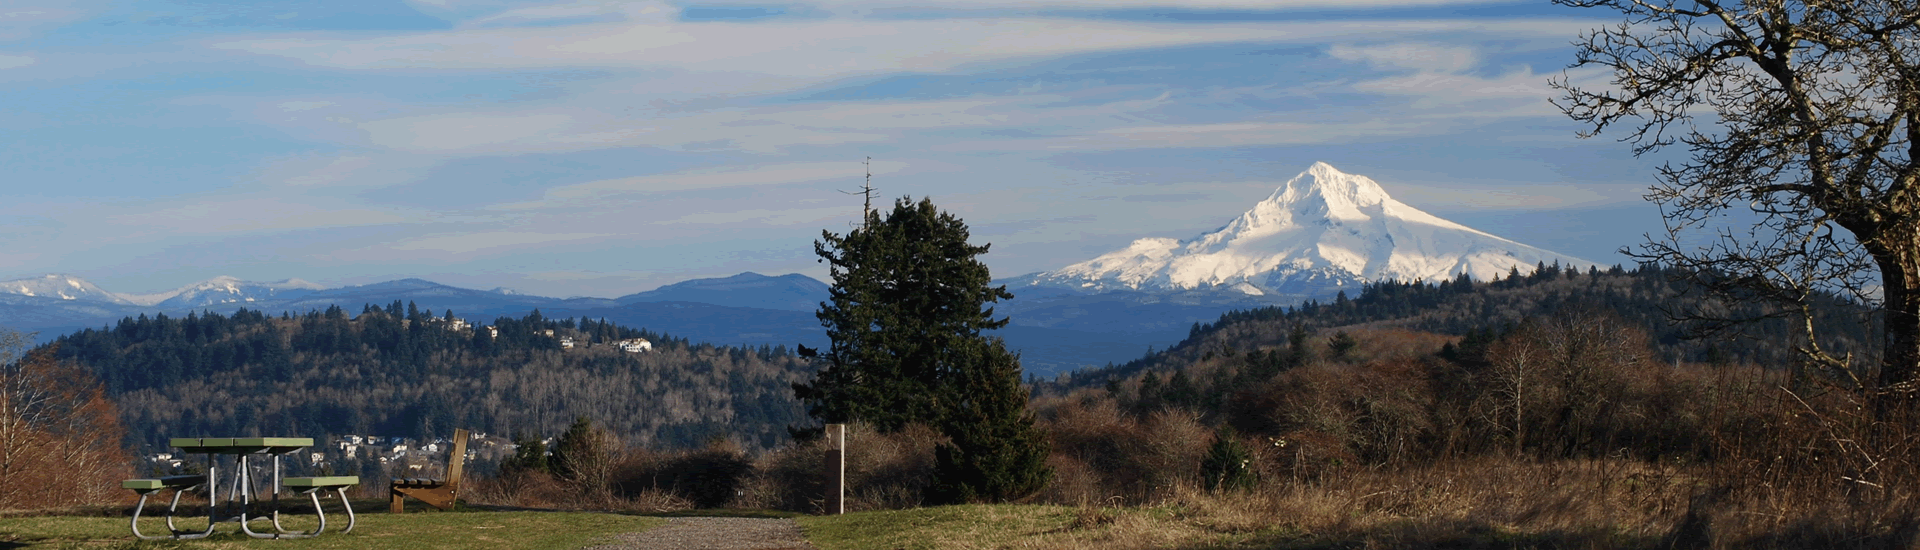 Friends of Powell Butte Nature Park Portland Oregon view